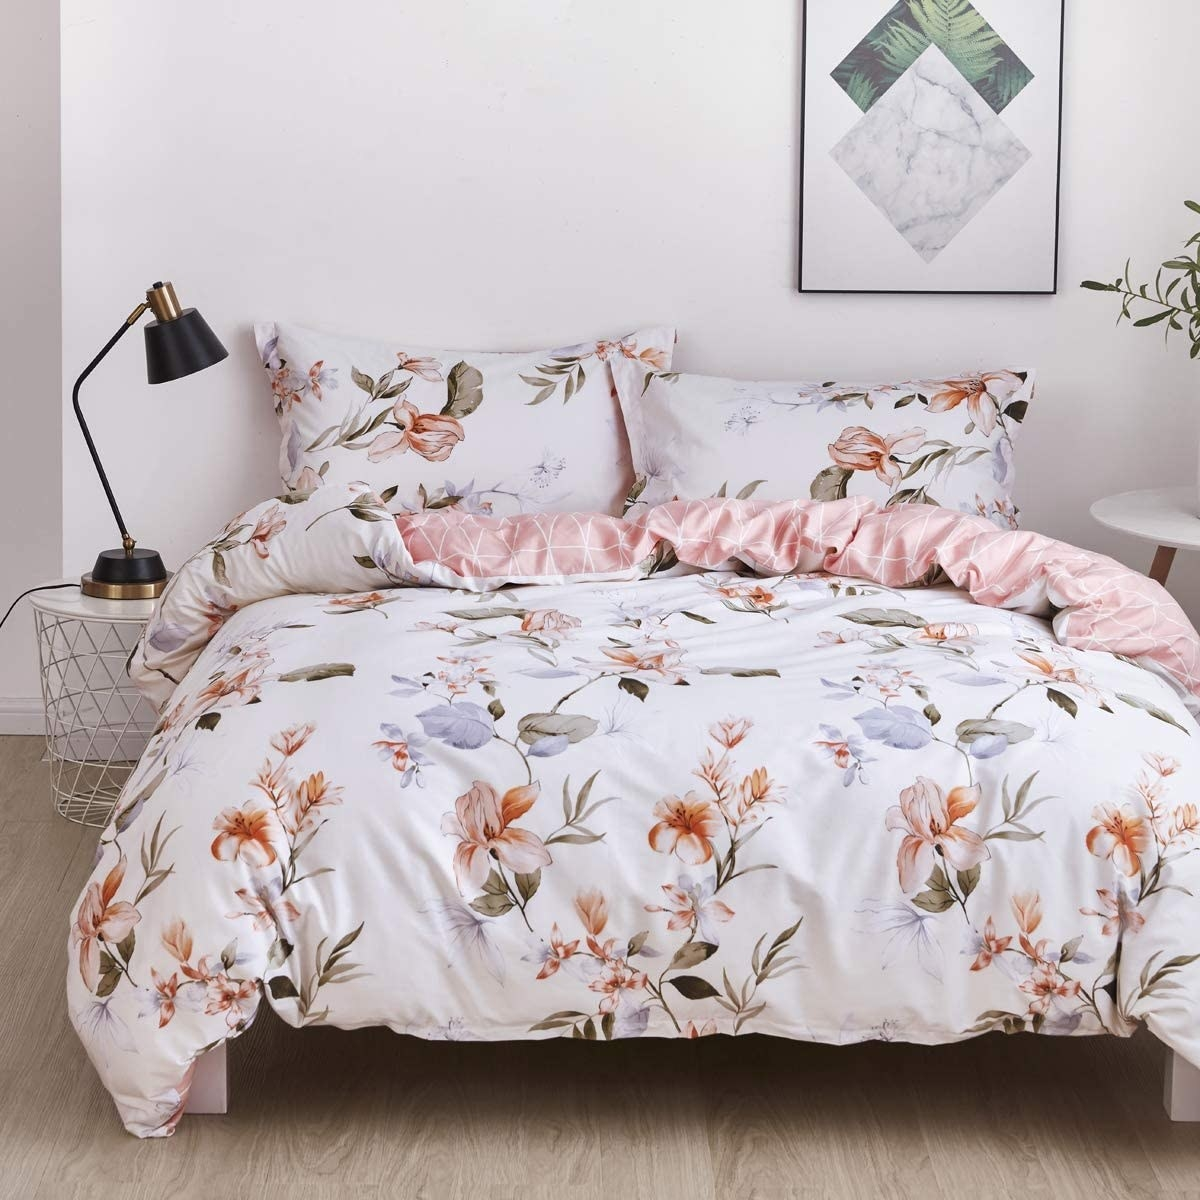 white floral duvet cover and pillow shams on a bed